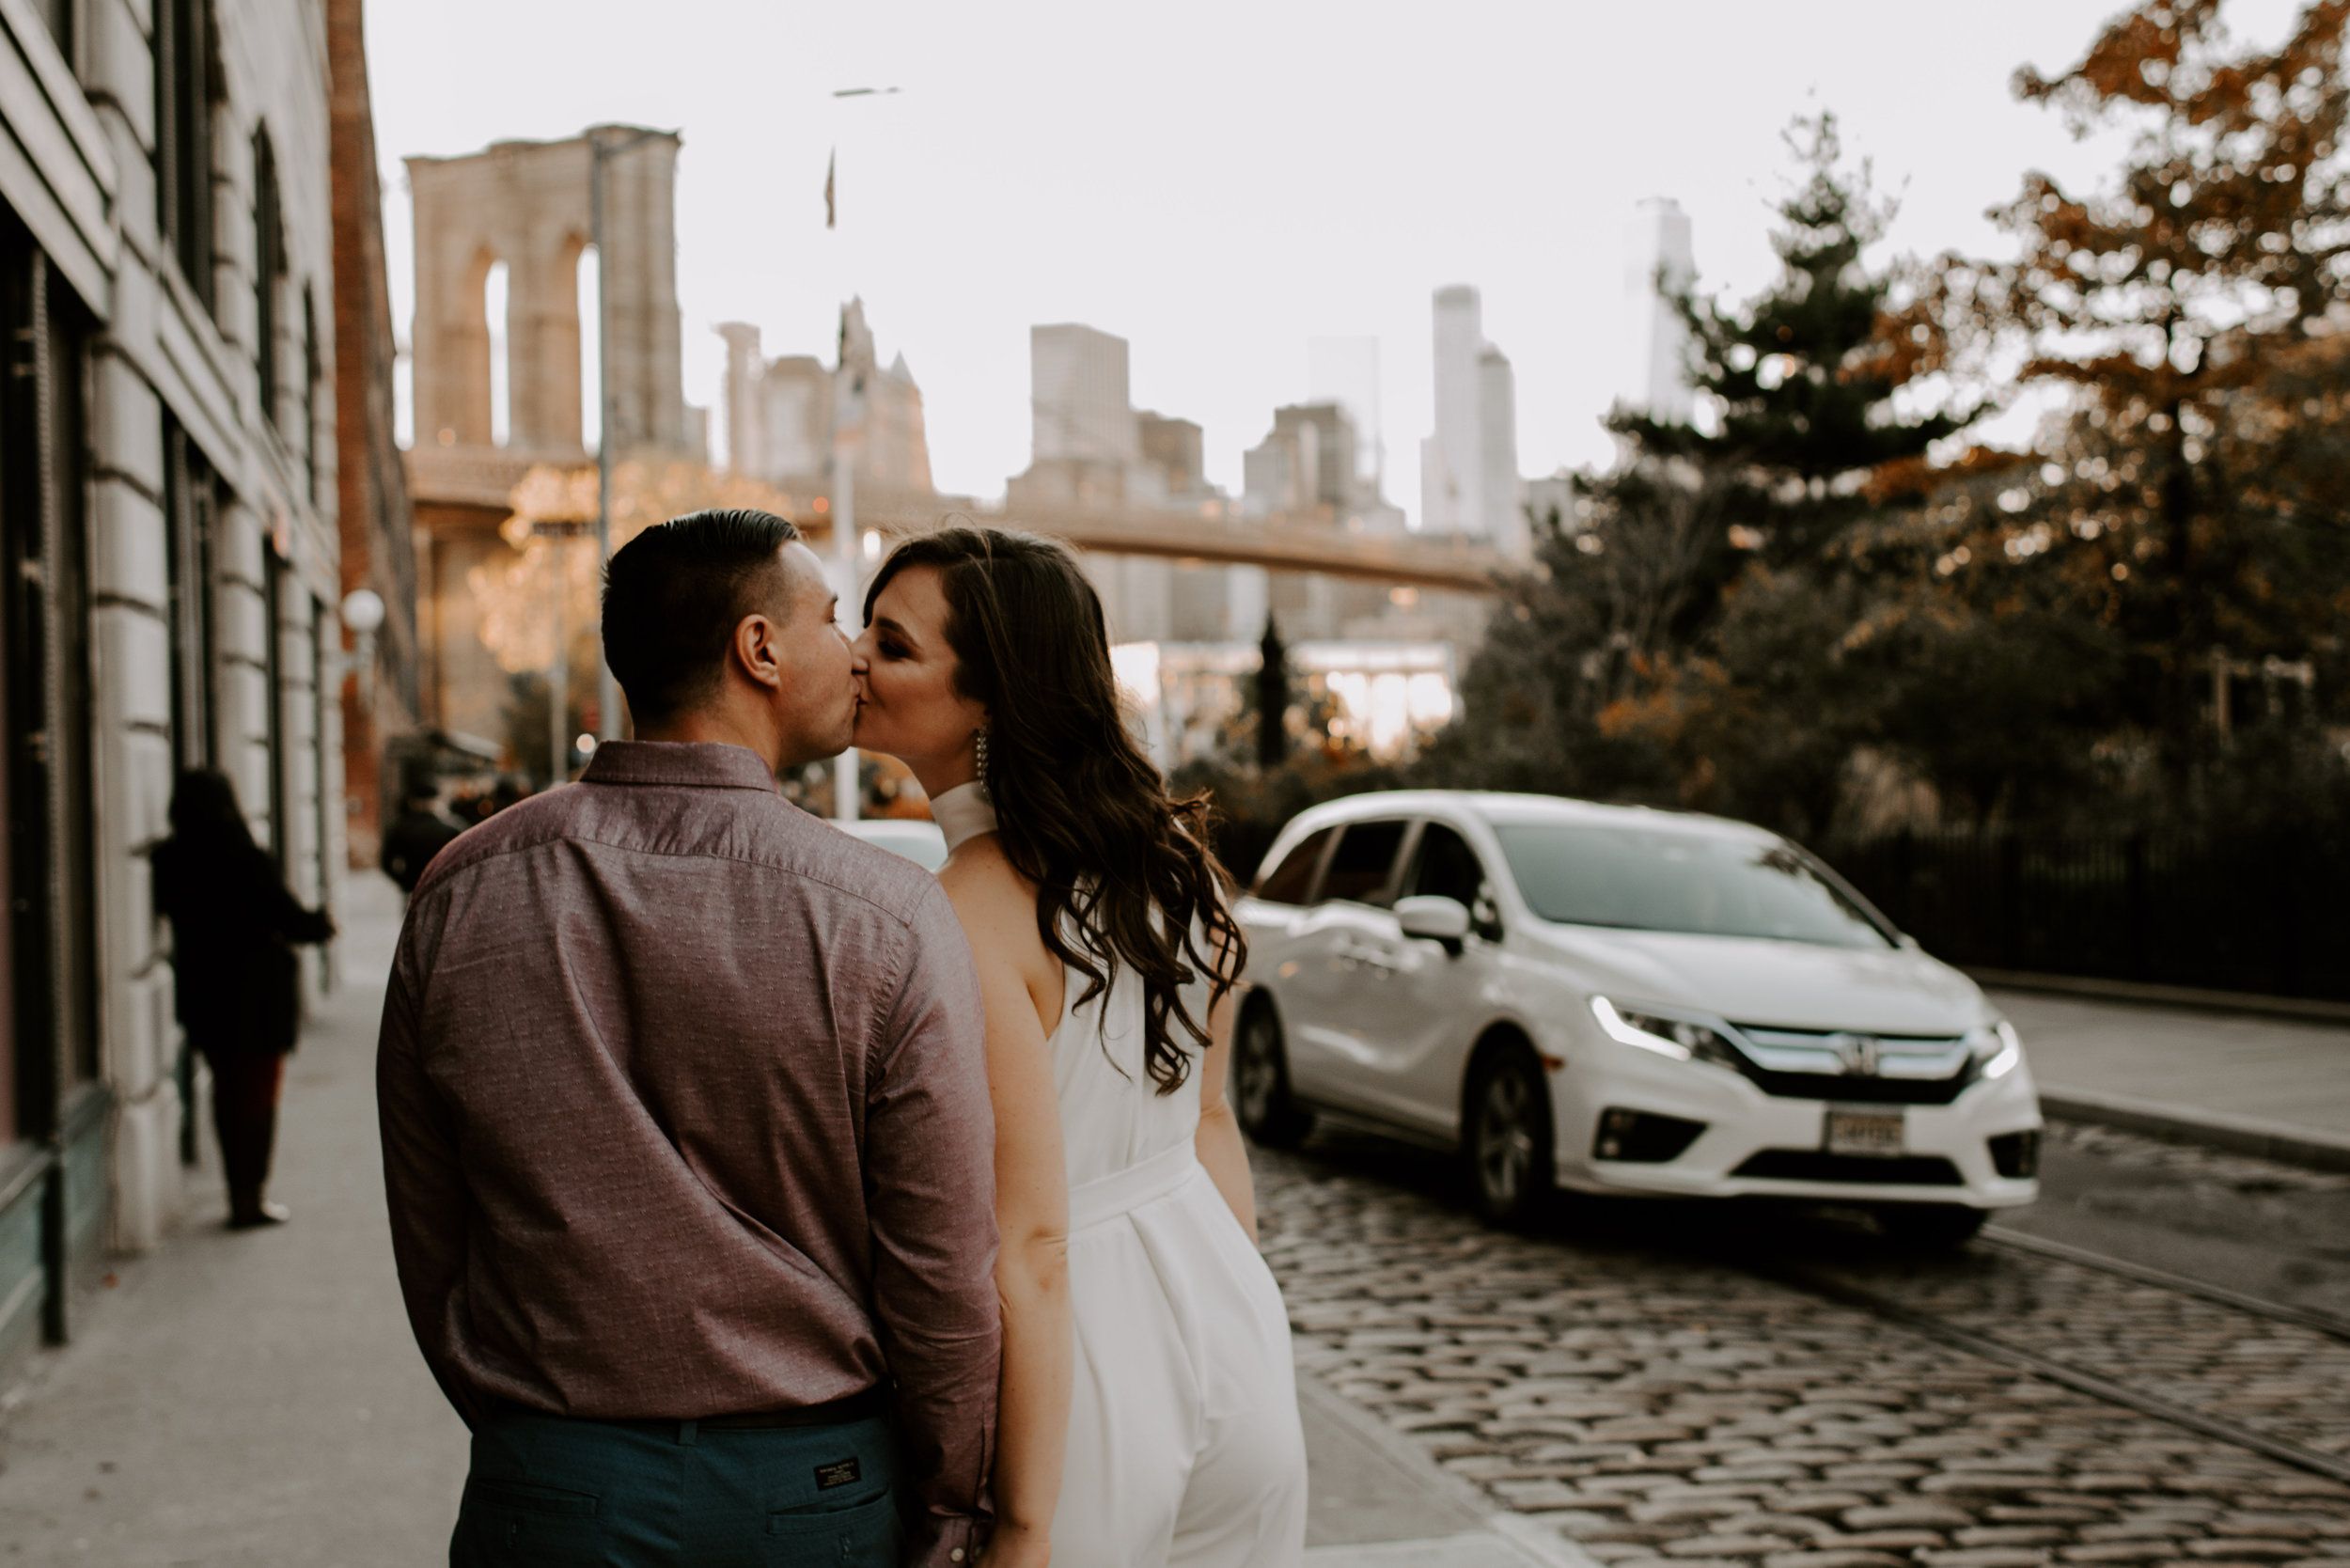 Nicole and Tyler's Fall Brooklyn Engagement Session | Brooklyn Wedding Photographer | Madeline Rose Photography Co.